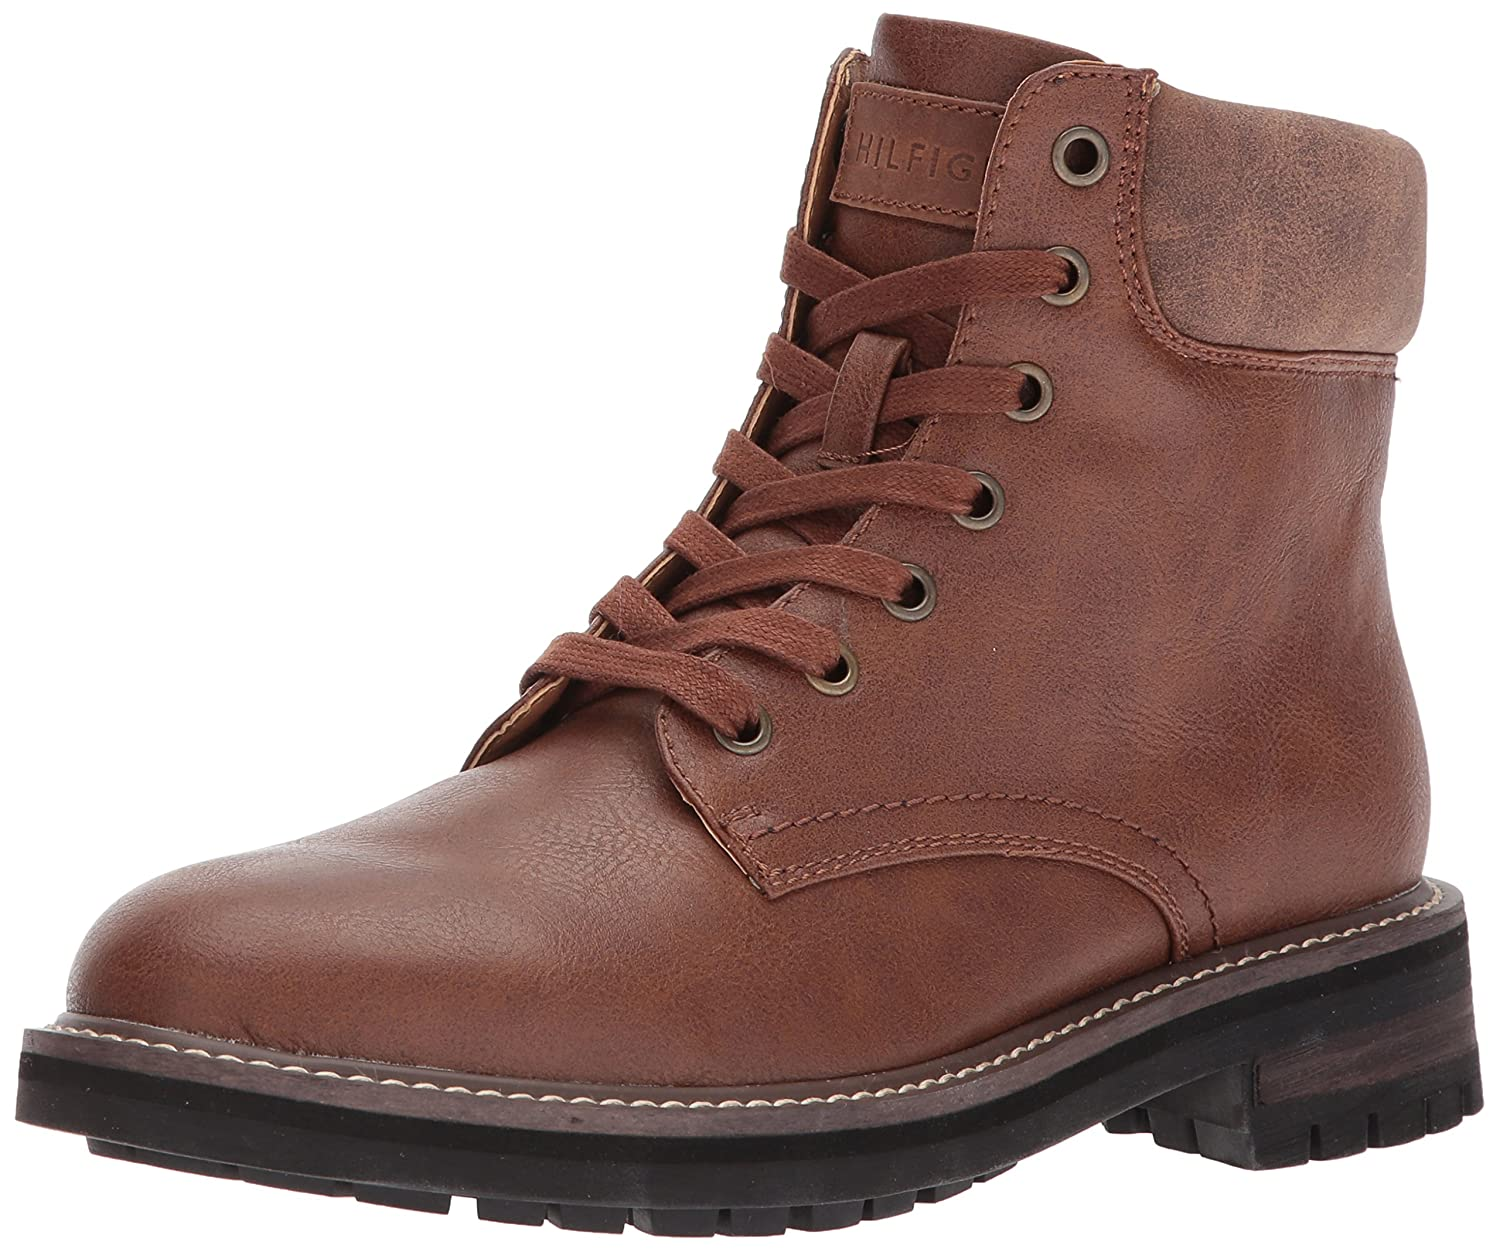 Tommy Hilfiger Men's Horus Combat Boot TMHORUS